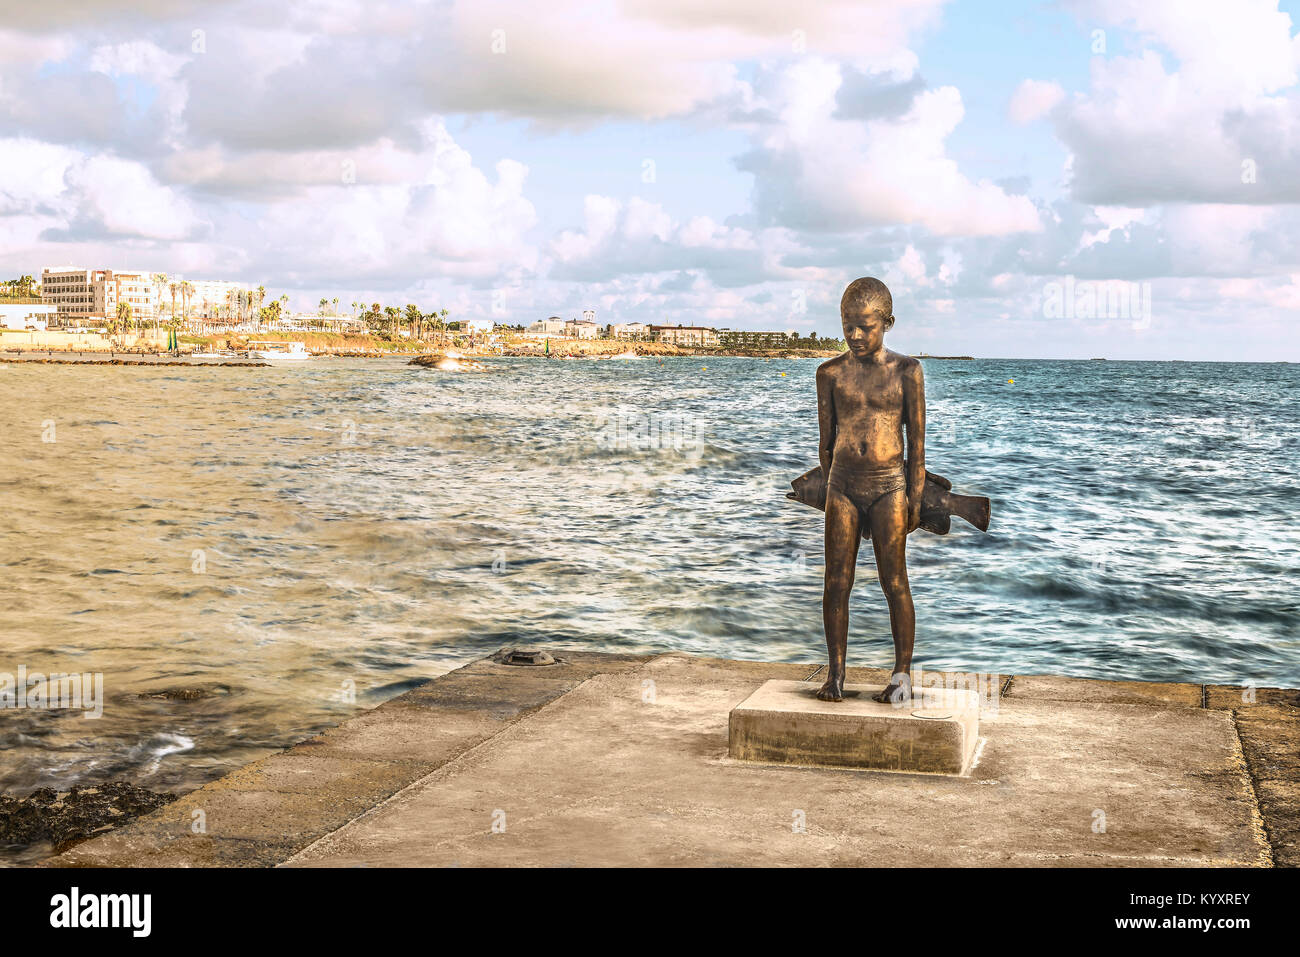 Statue of a boy with a fish on the shore of the Mediterranean Sea. - Stock Image